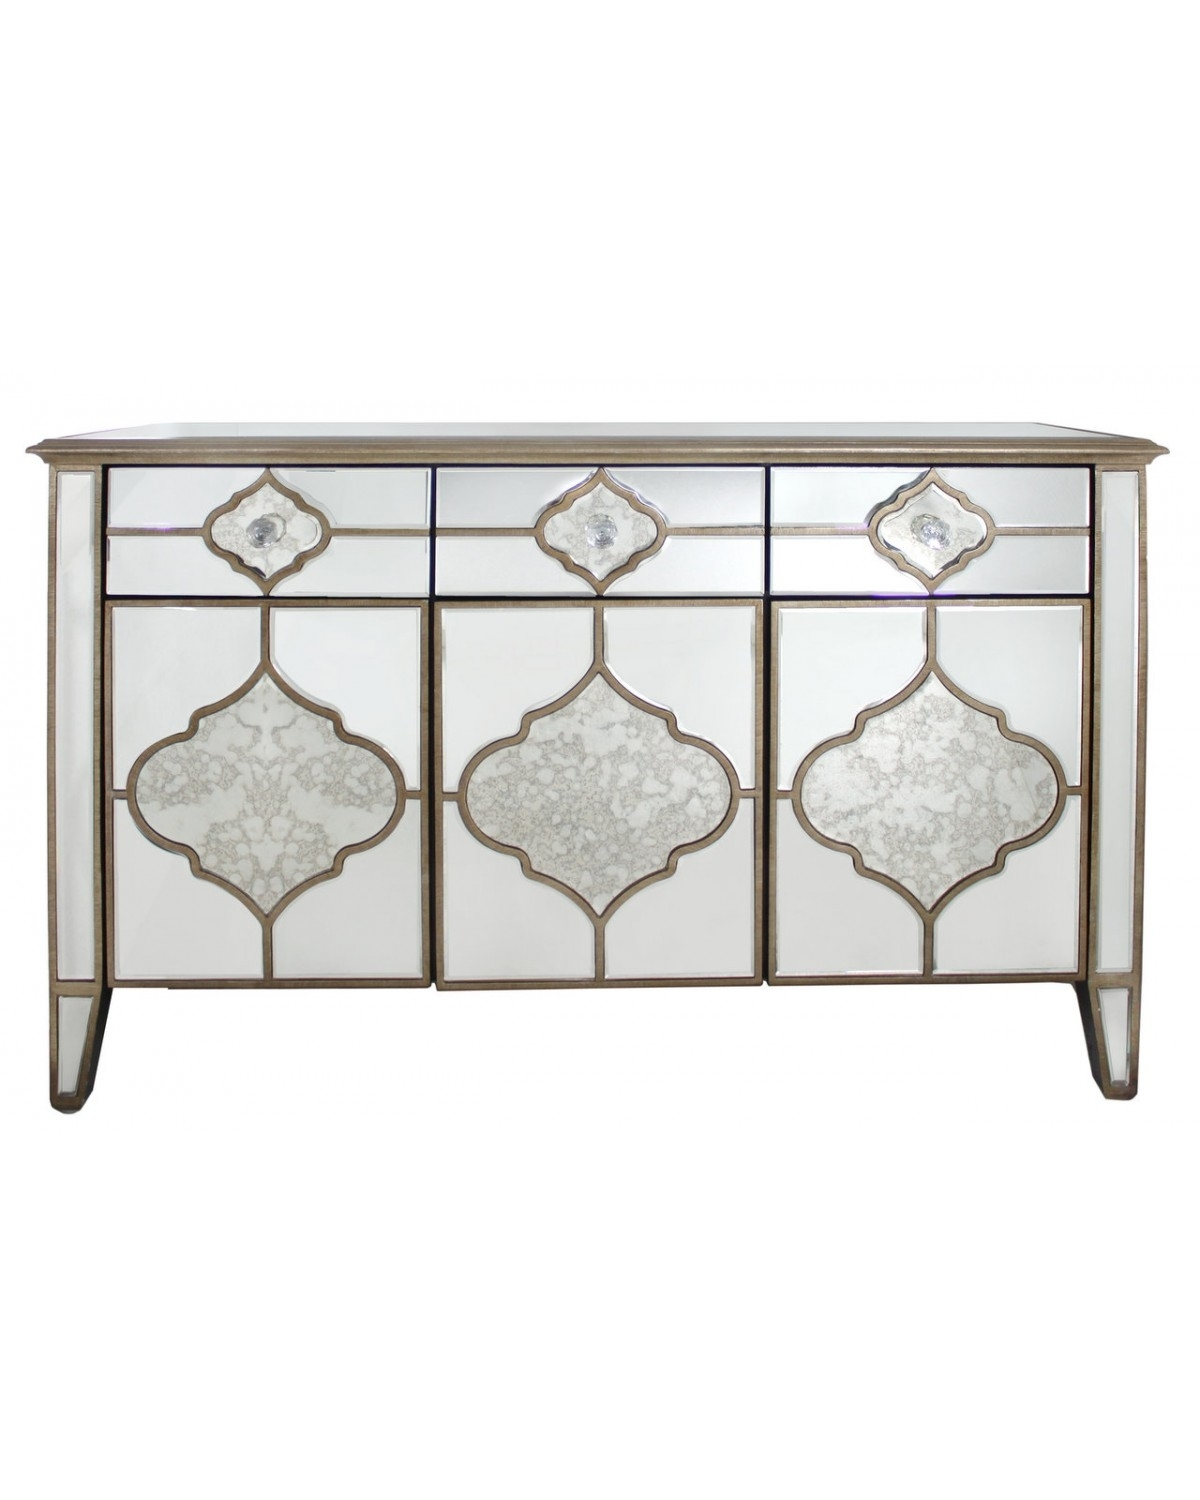 Marrakech Mirror 3 Drawer 3 Mirror Sideboard | Cimc Home regarding 3-Door 3-Drawer Metal Inserts Sideboards (Image 19 of 30)